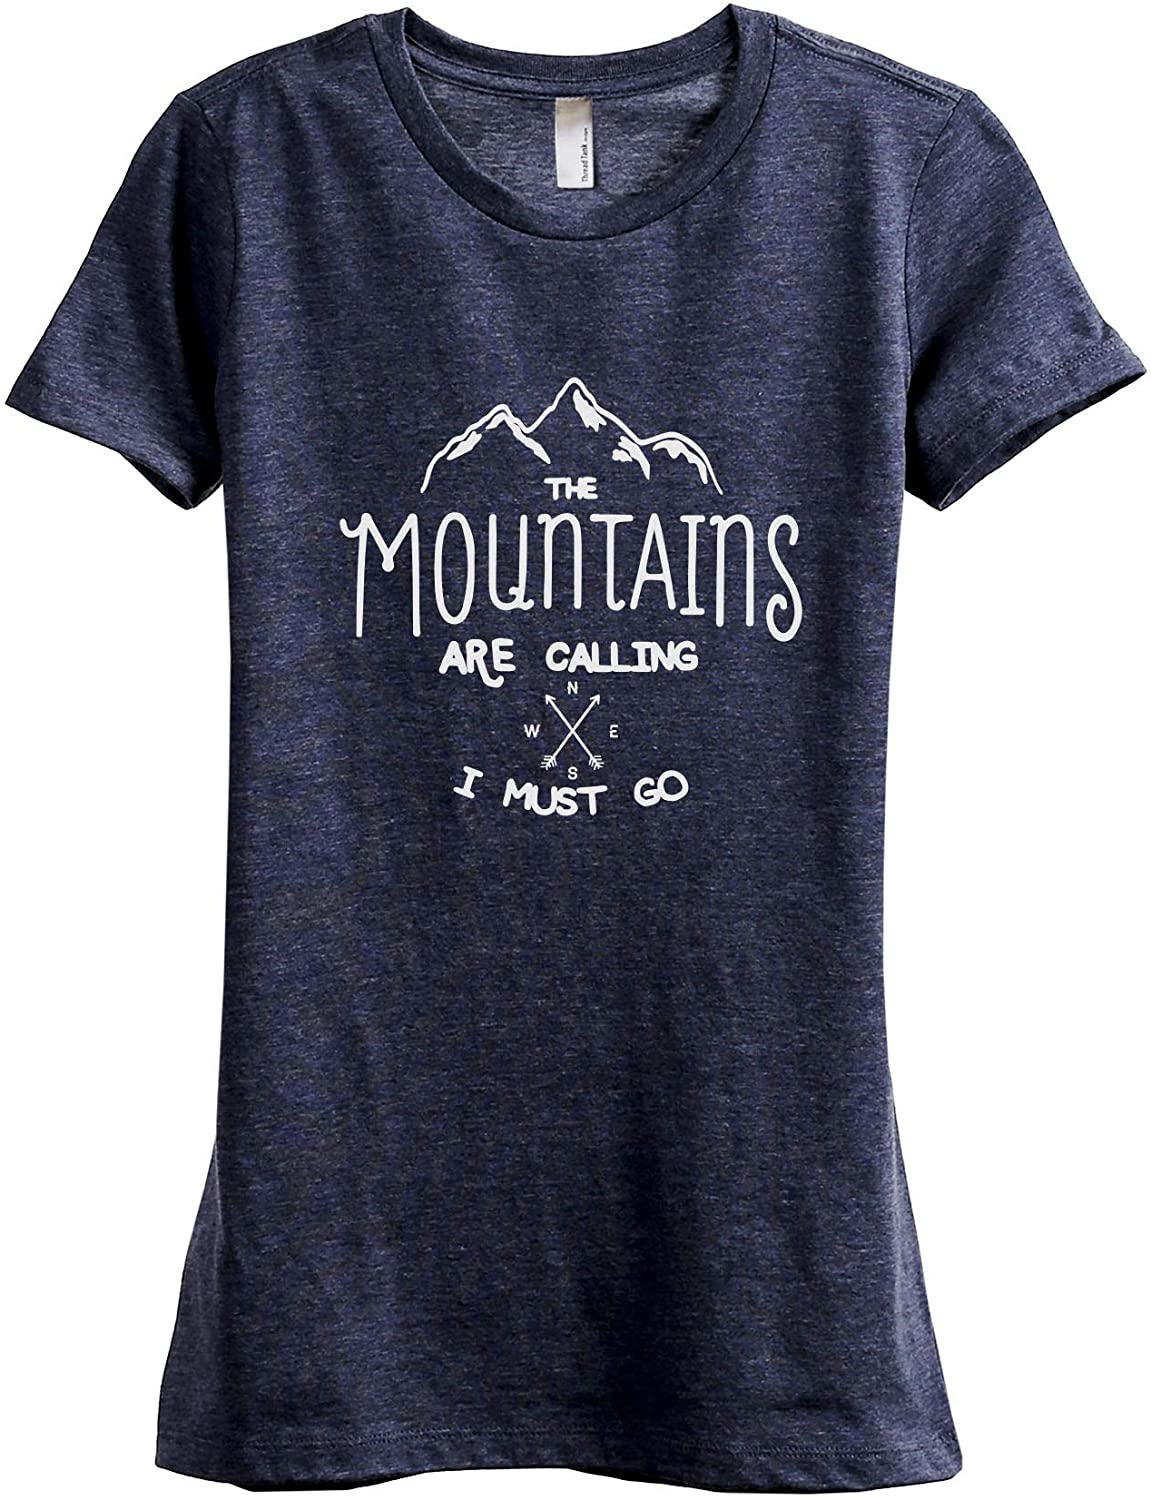 The Mountains are Calling I Must Go Women's Fashion Relaxed T-Shirt Tee